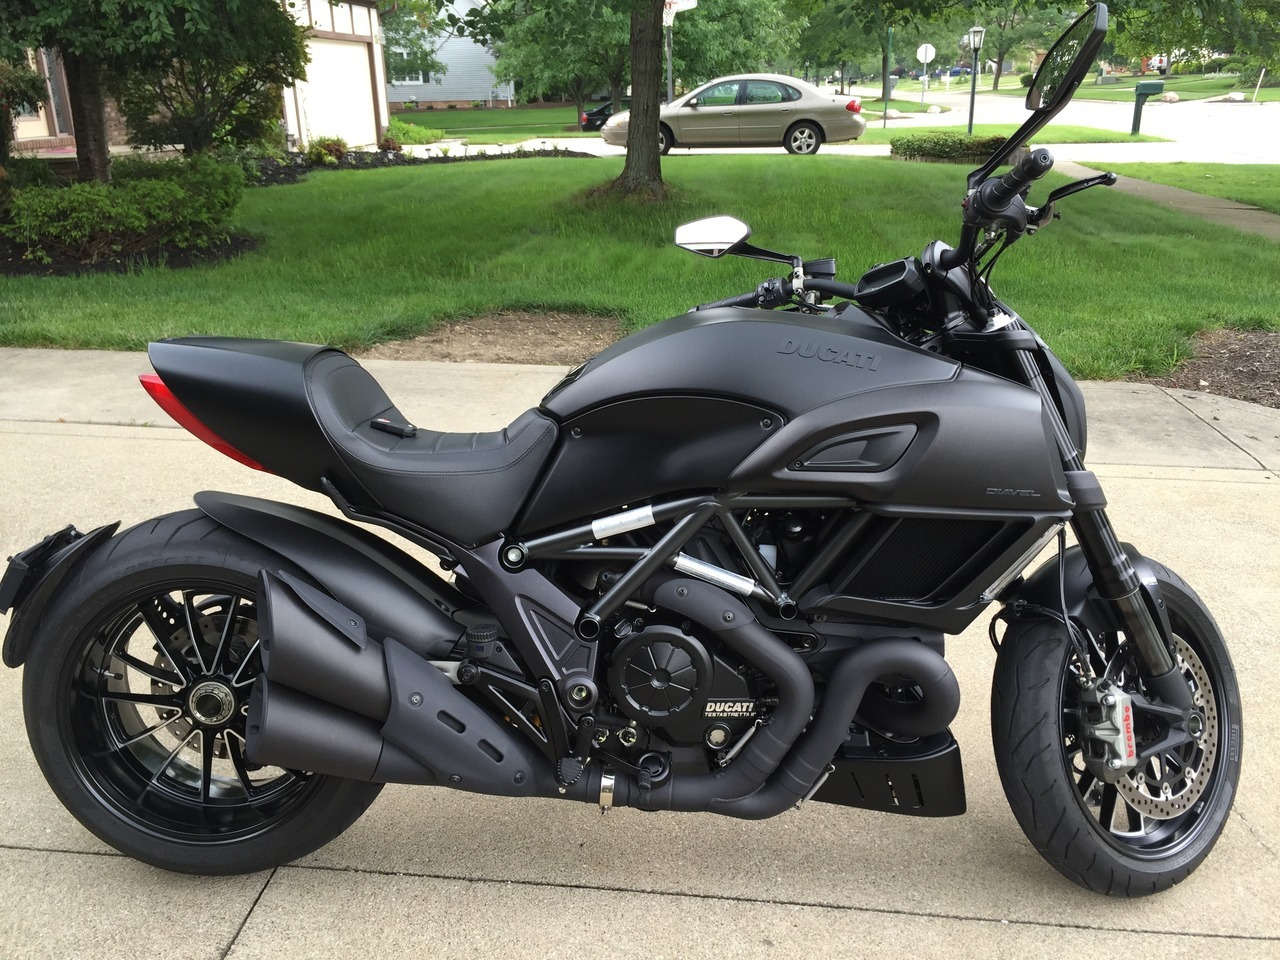 Ducati Diavel Motorcycles For Sale